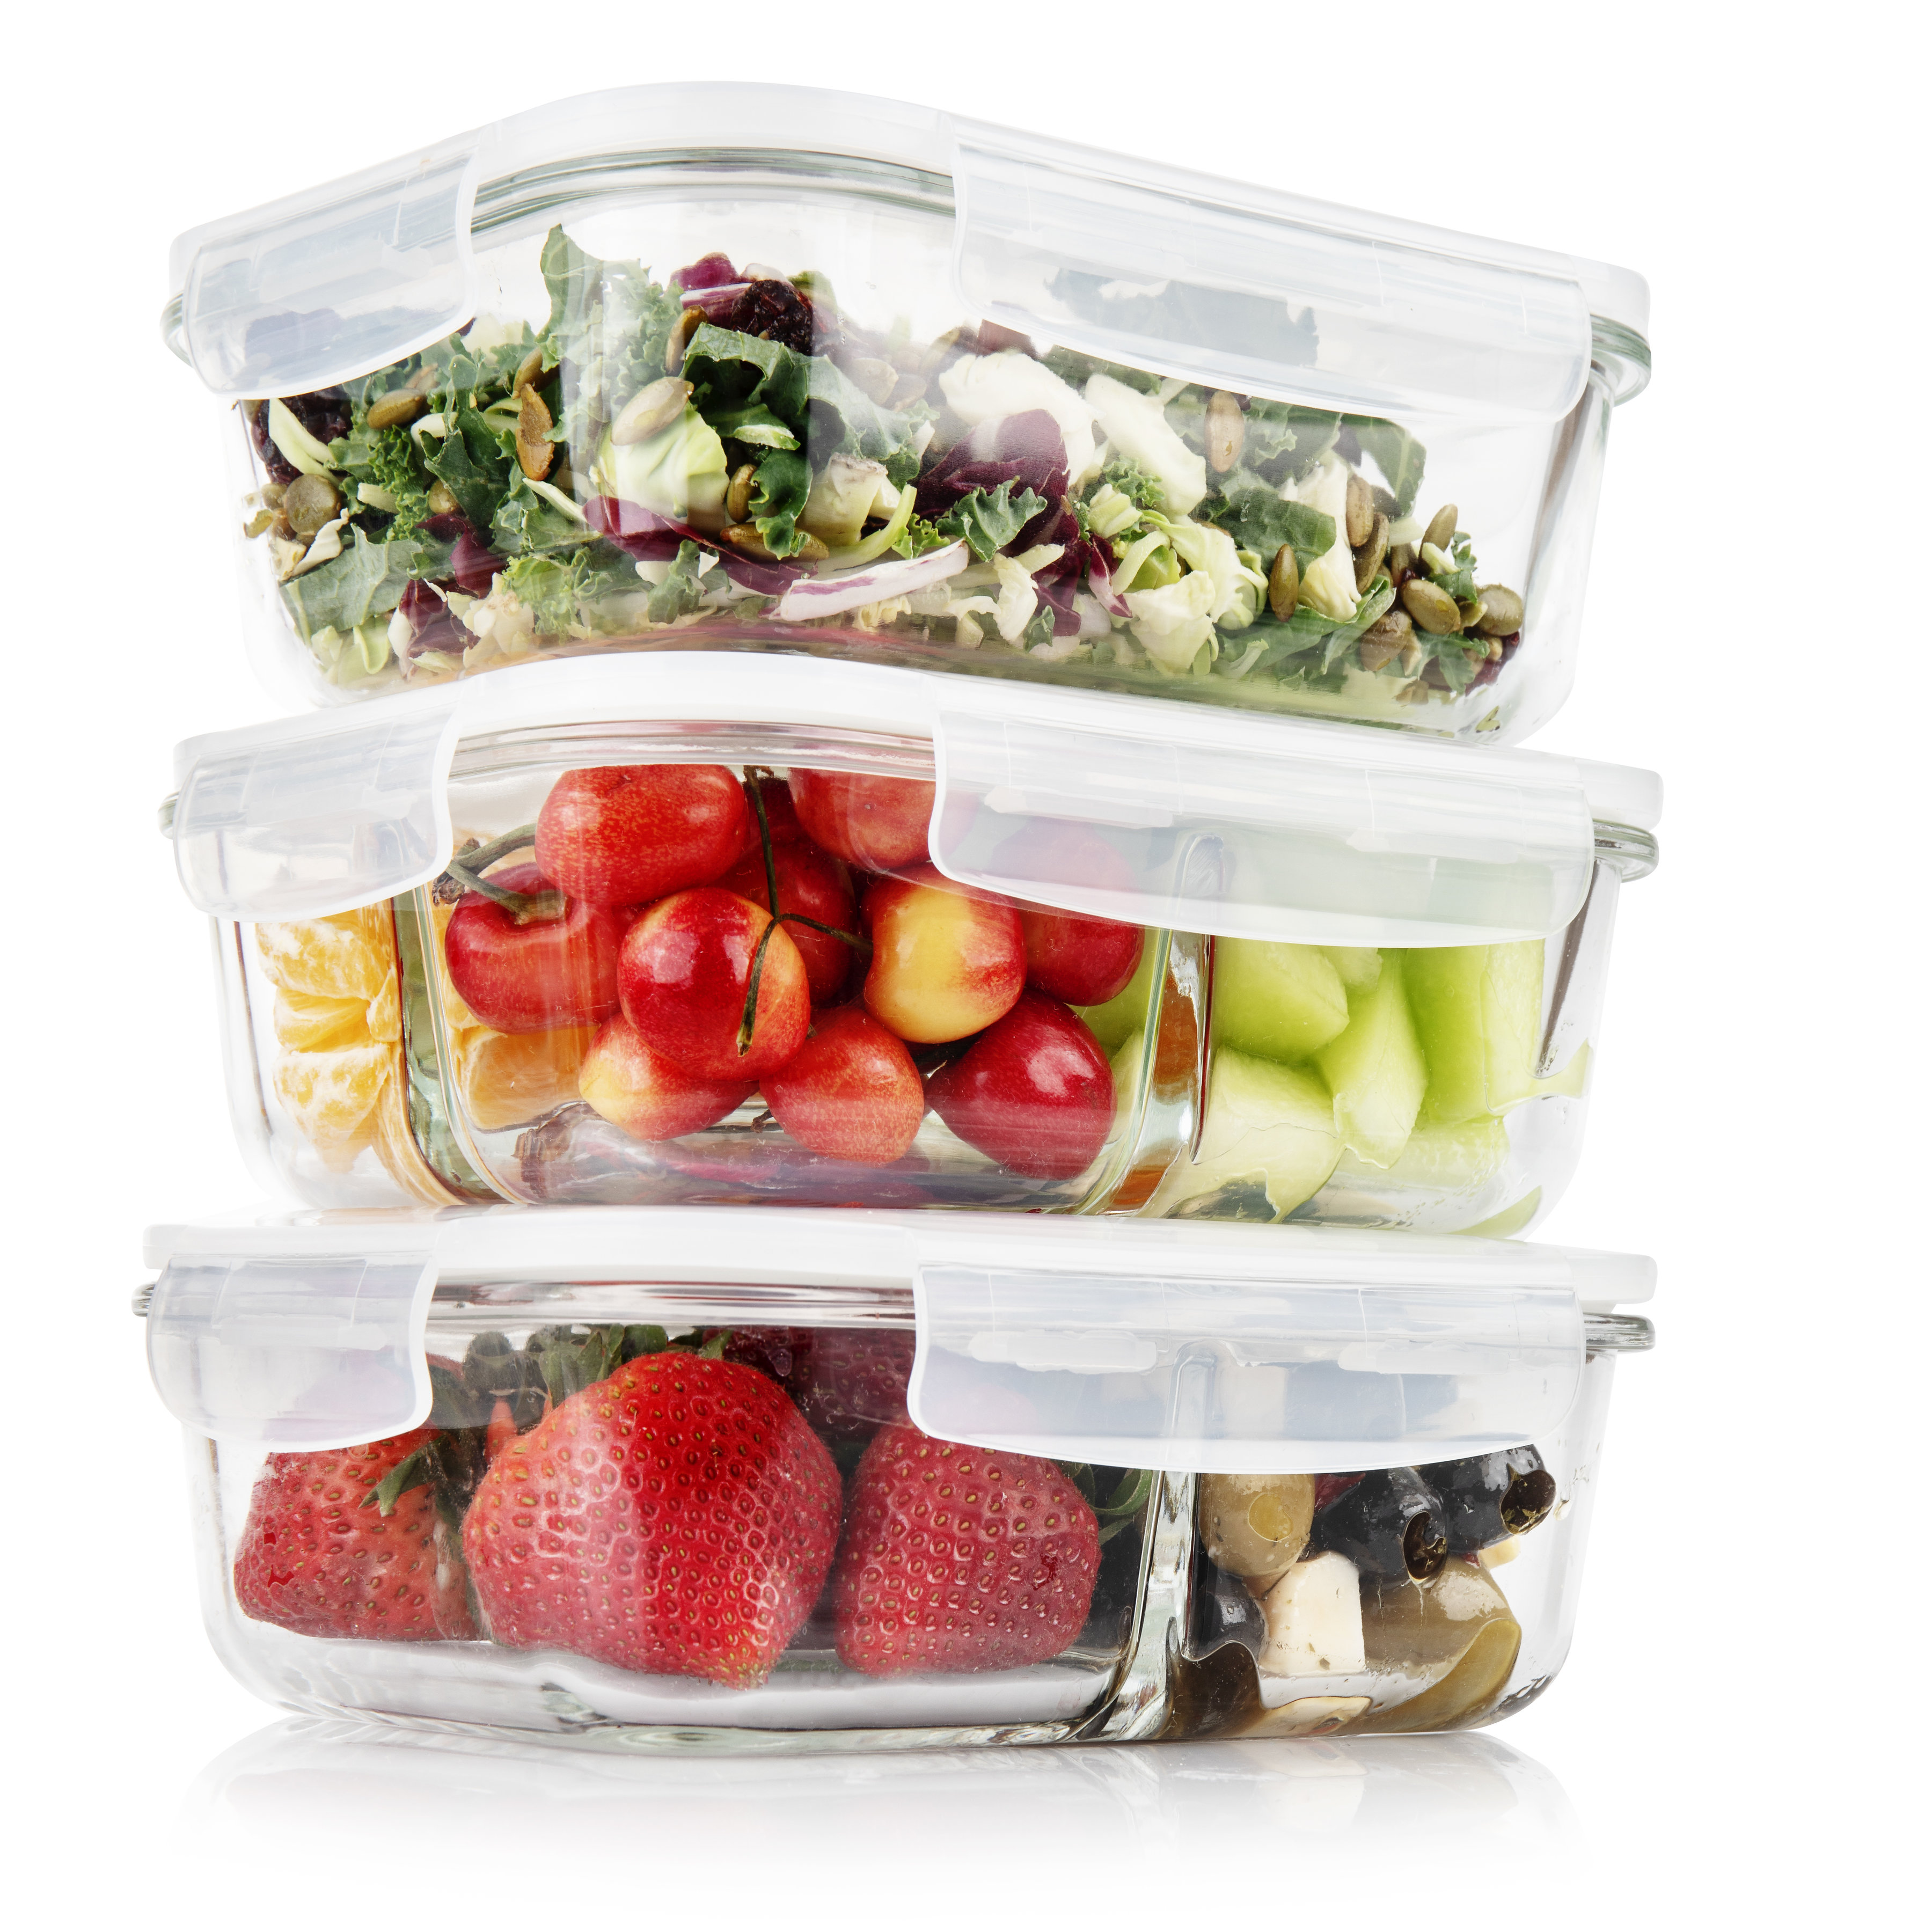 1 & 2 & 3 Compartment Glass Meal Prep Containers - 3 Pack, 35 Oz